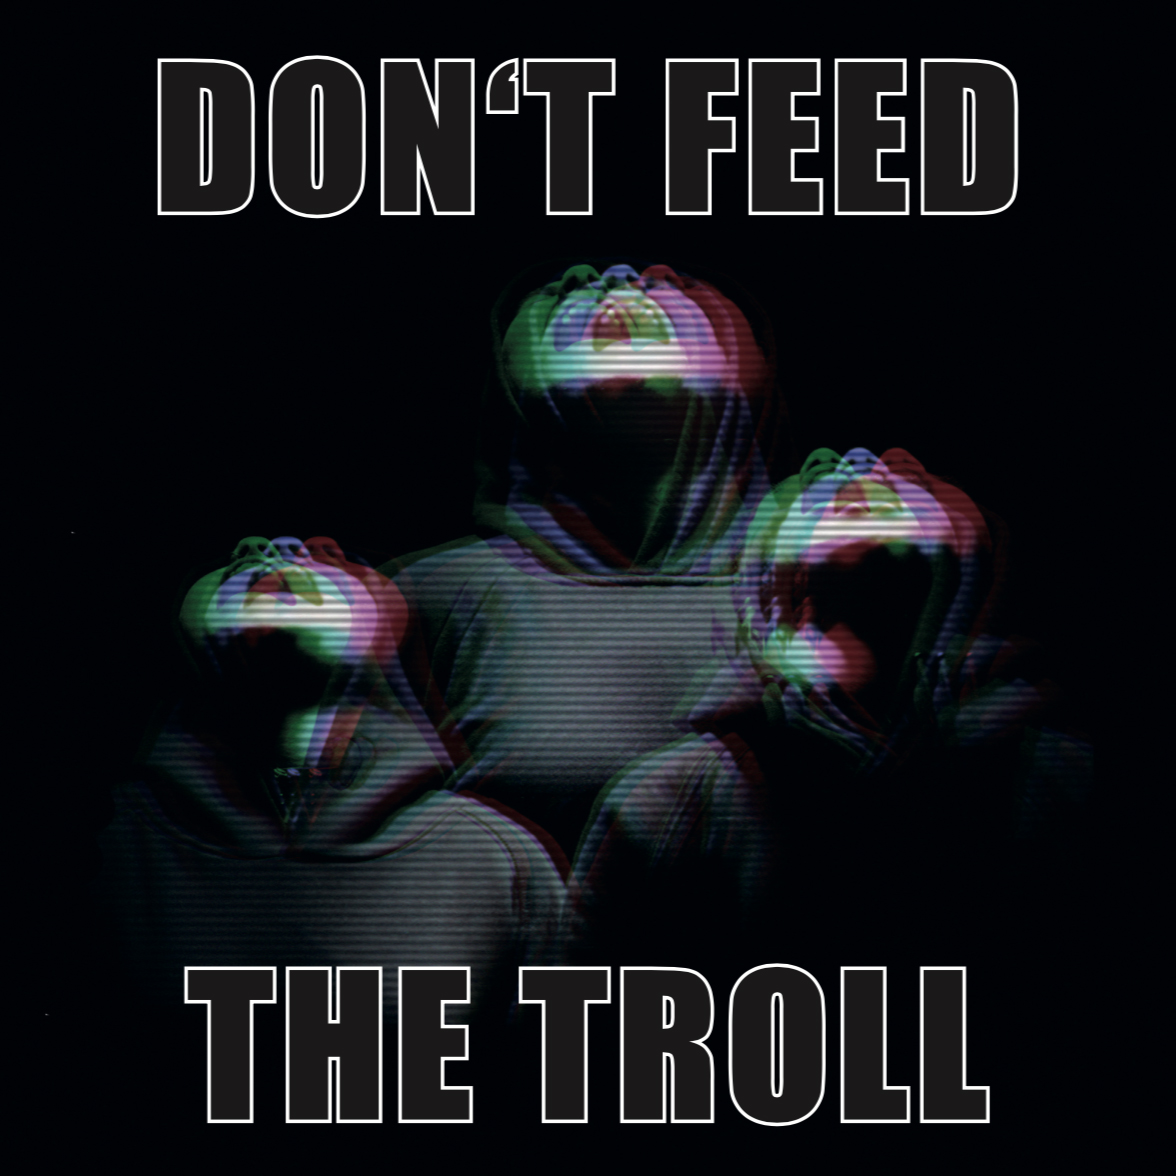 DON'T FEED THE TROLL